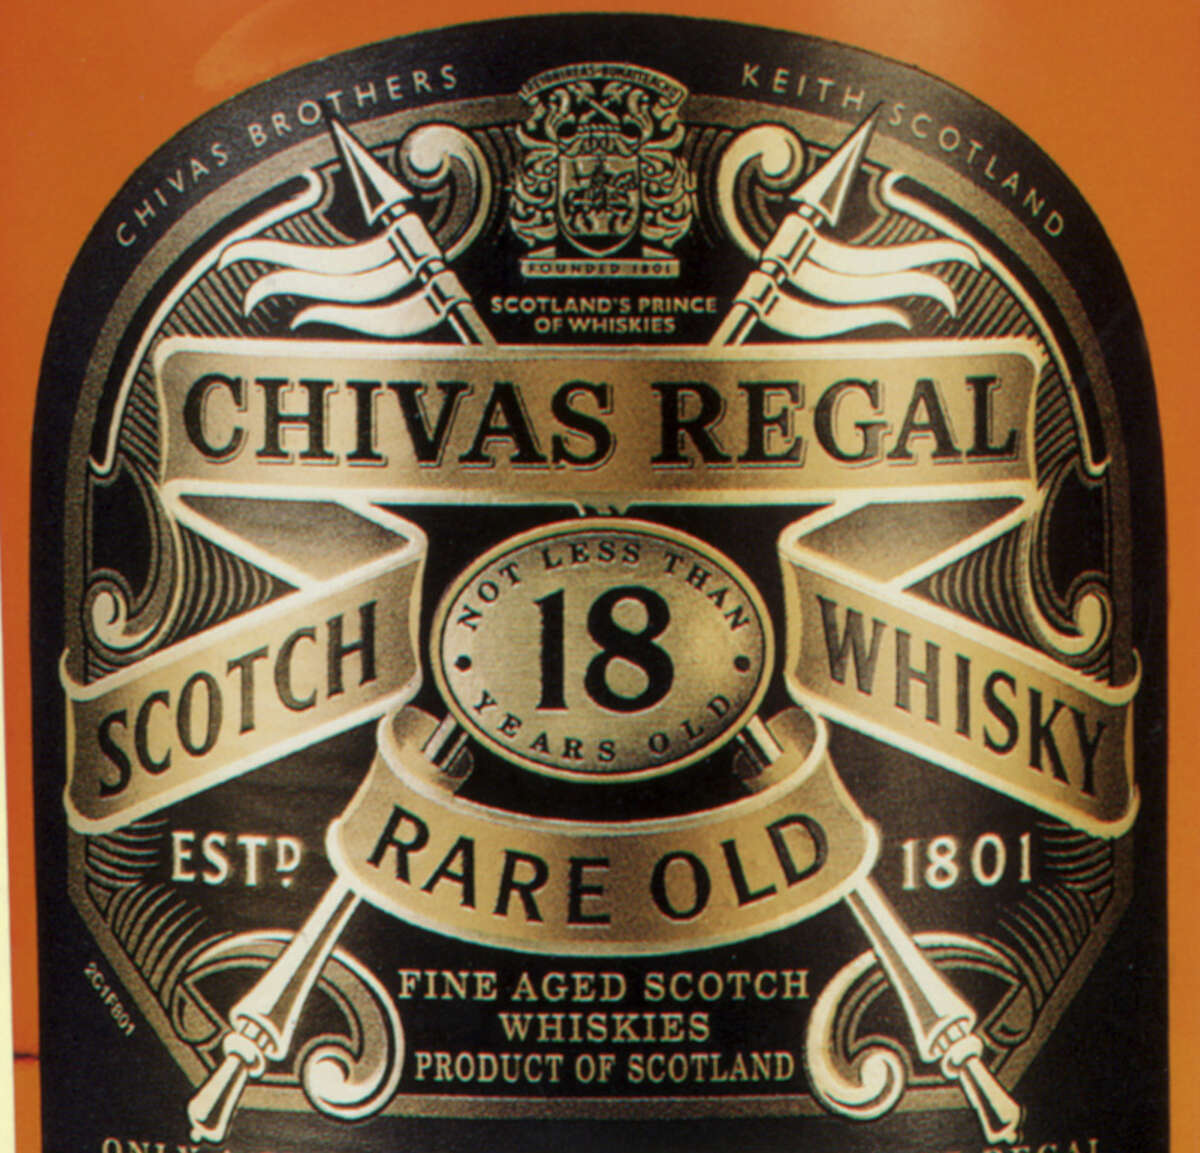 The Texas Monthly Whiskey Affair will be held in Houston on Oct. 12. The event will feature brown spirits, cocktails, food and entertainment. Chivas Regal is one of the brands represented at the festival.